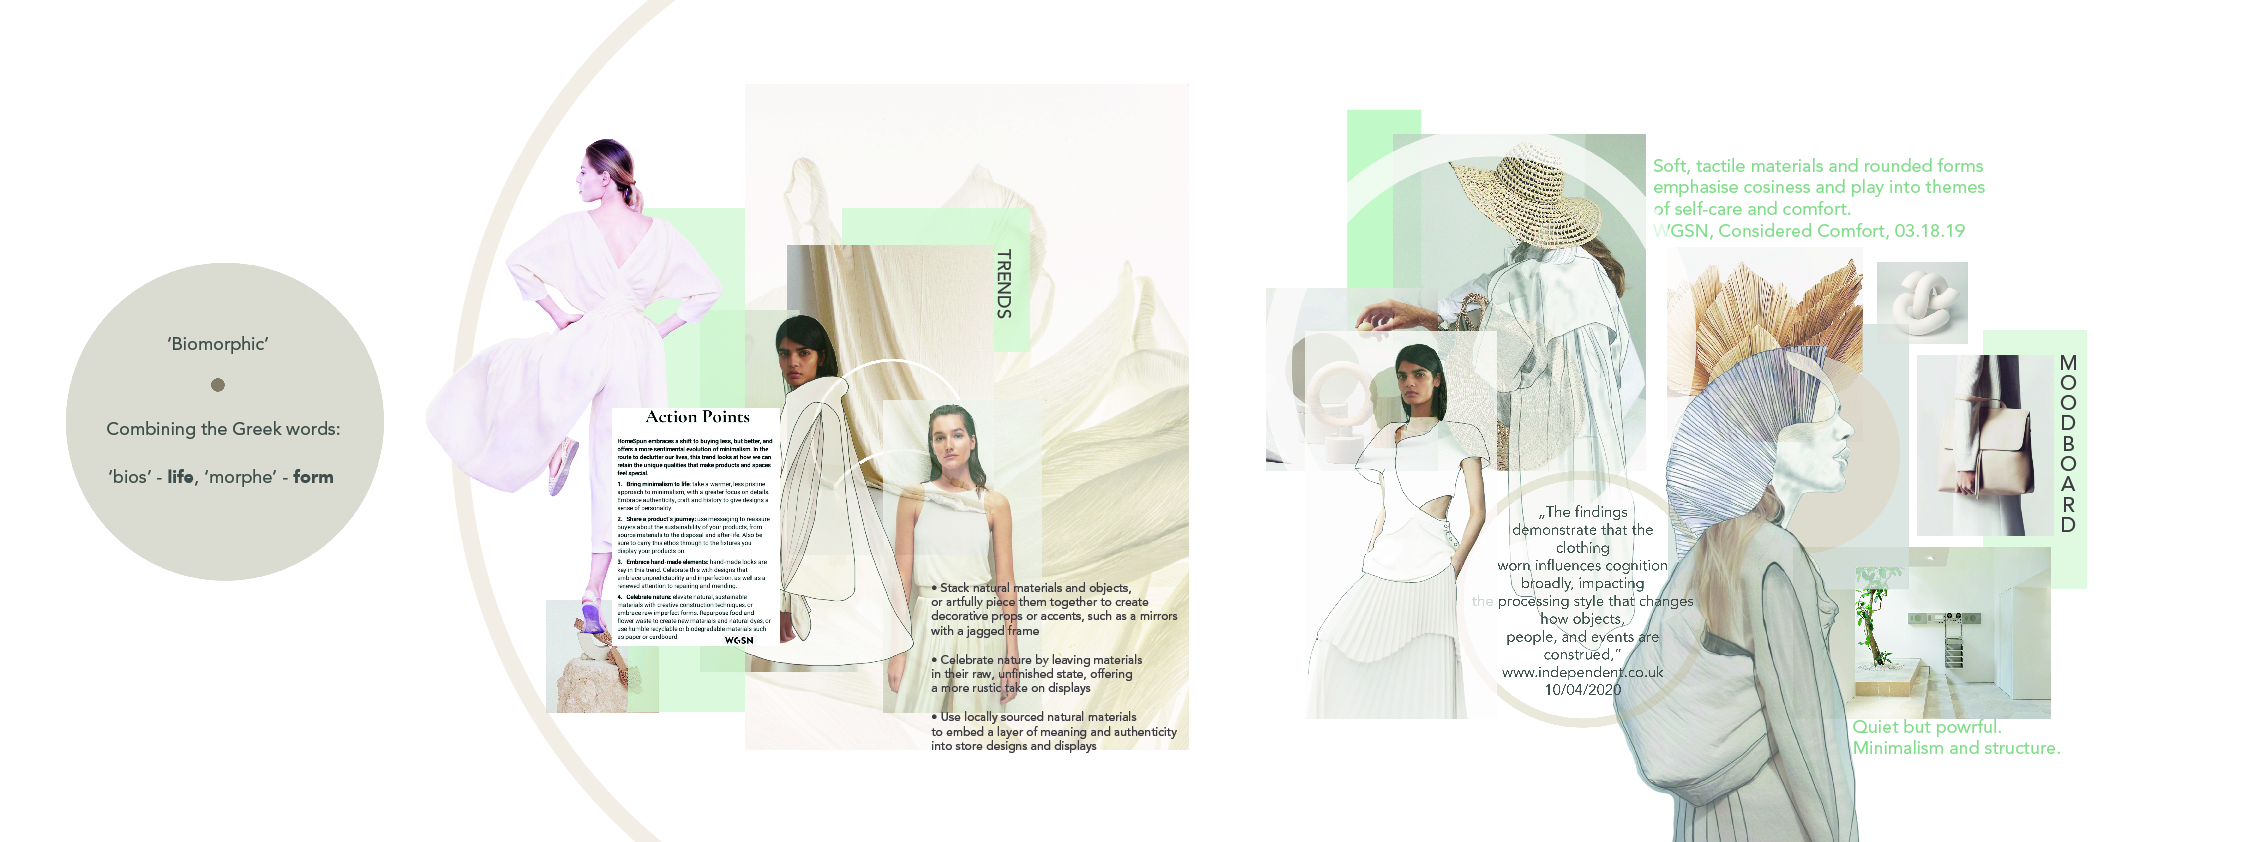 Donata Zawojak_2149218_assignsubmission_file_1 moodboard and trends